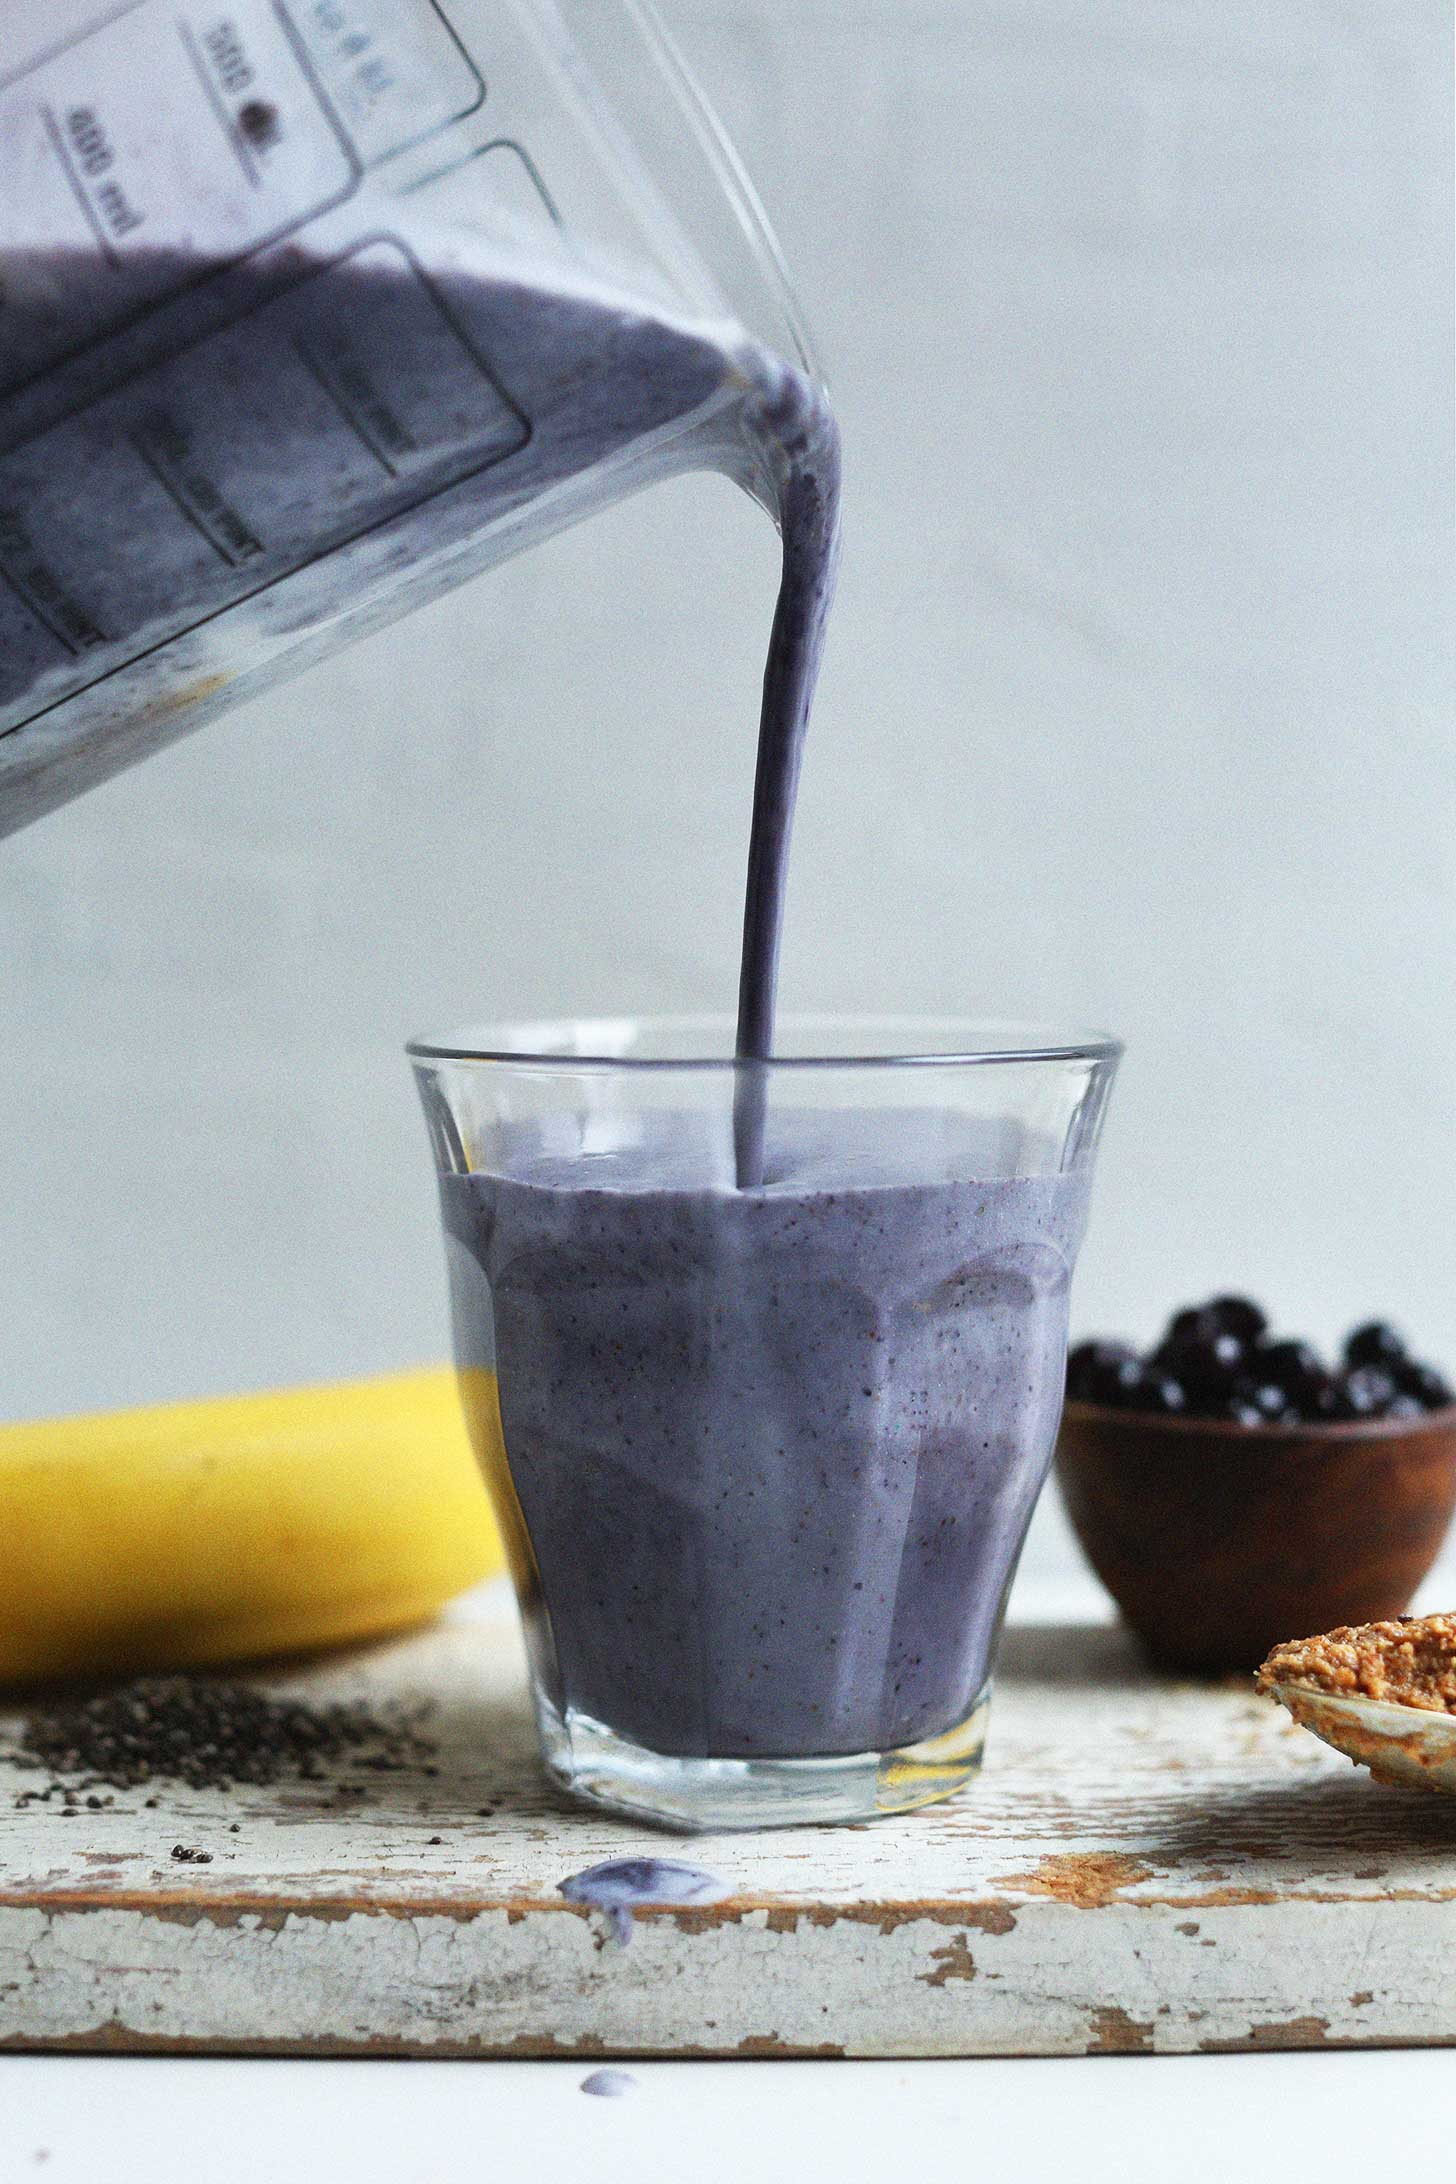 Pouring Almond Butter Blueberry Smoothie into a glass for a plant-based breakfast